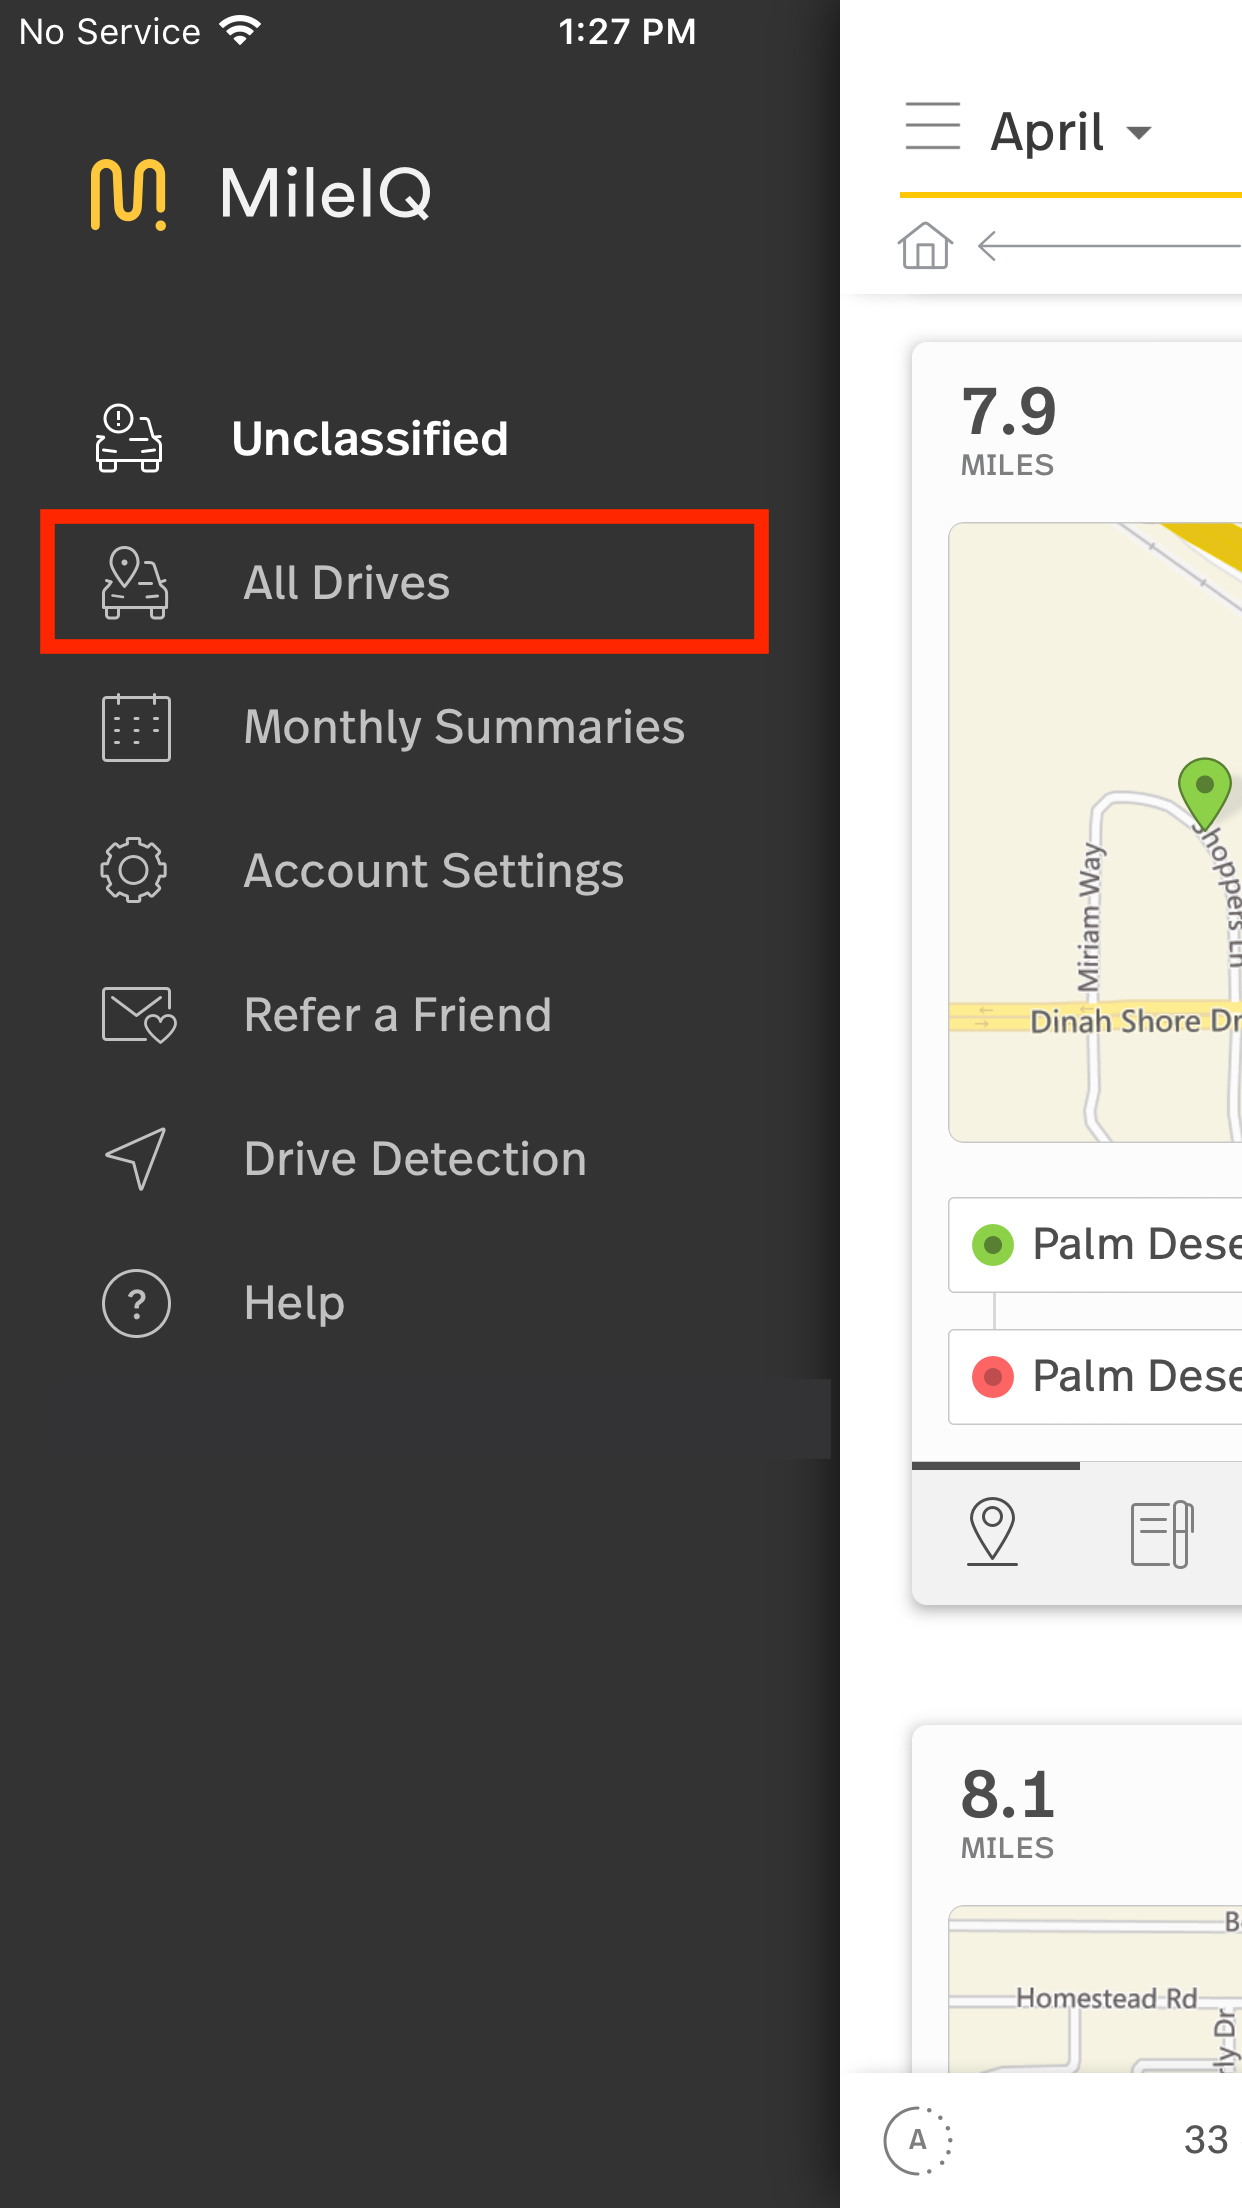 This image shows the Settings page on the mobile app, highlighting the All Drives button. g